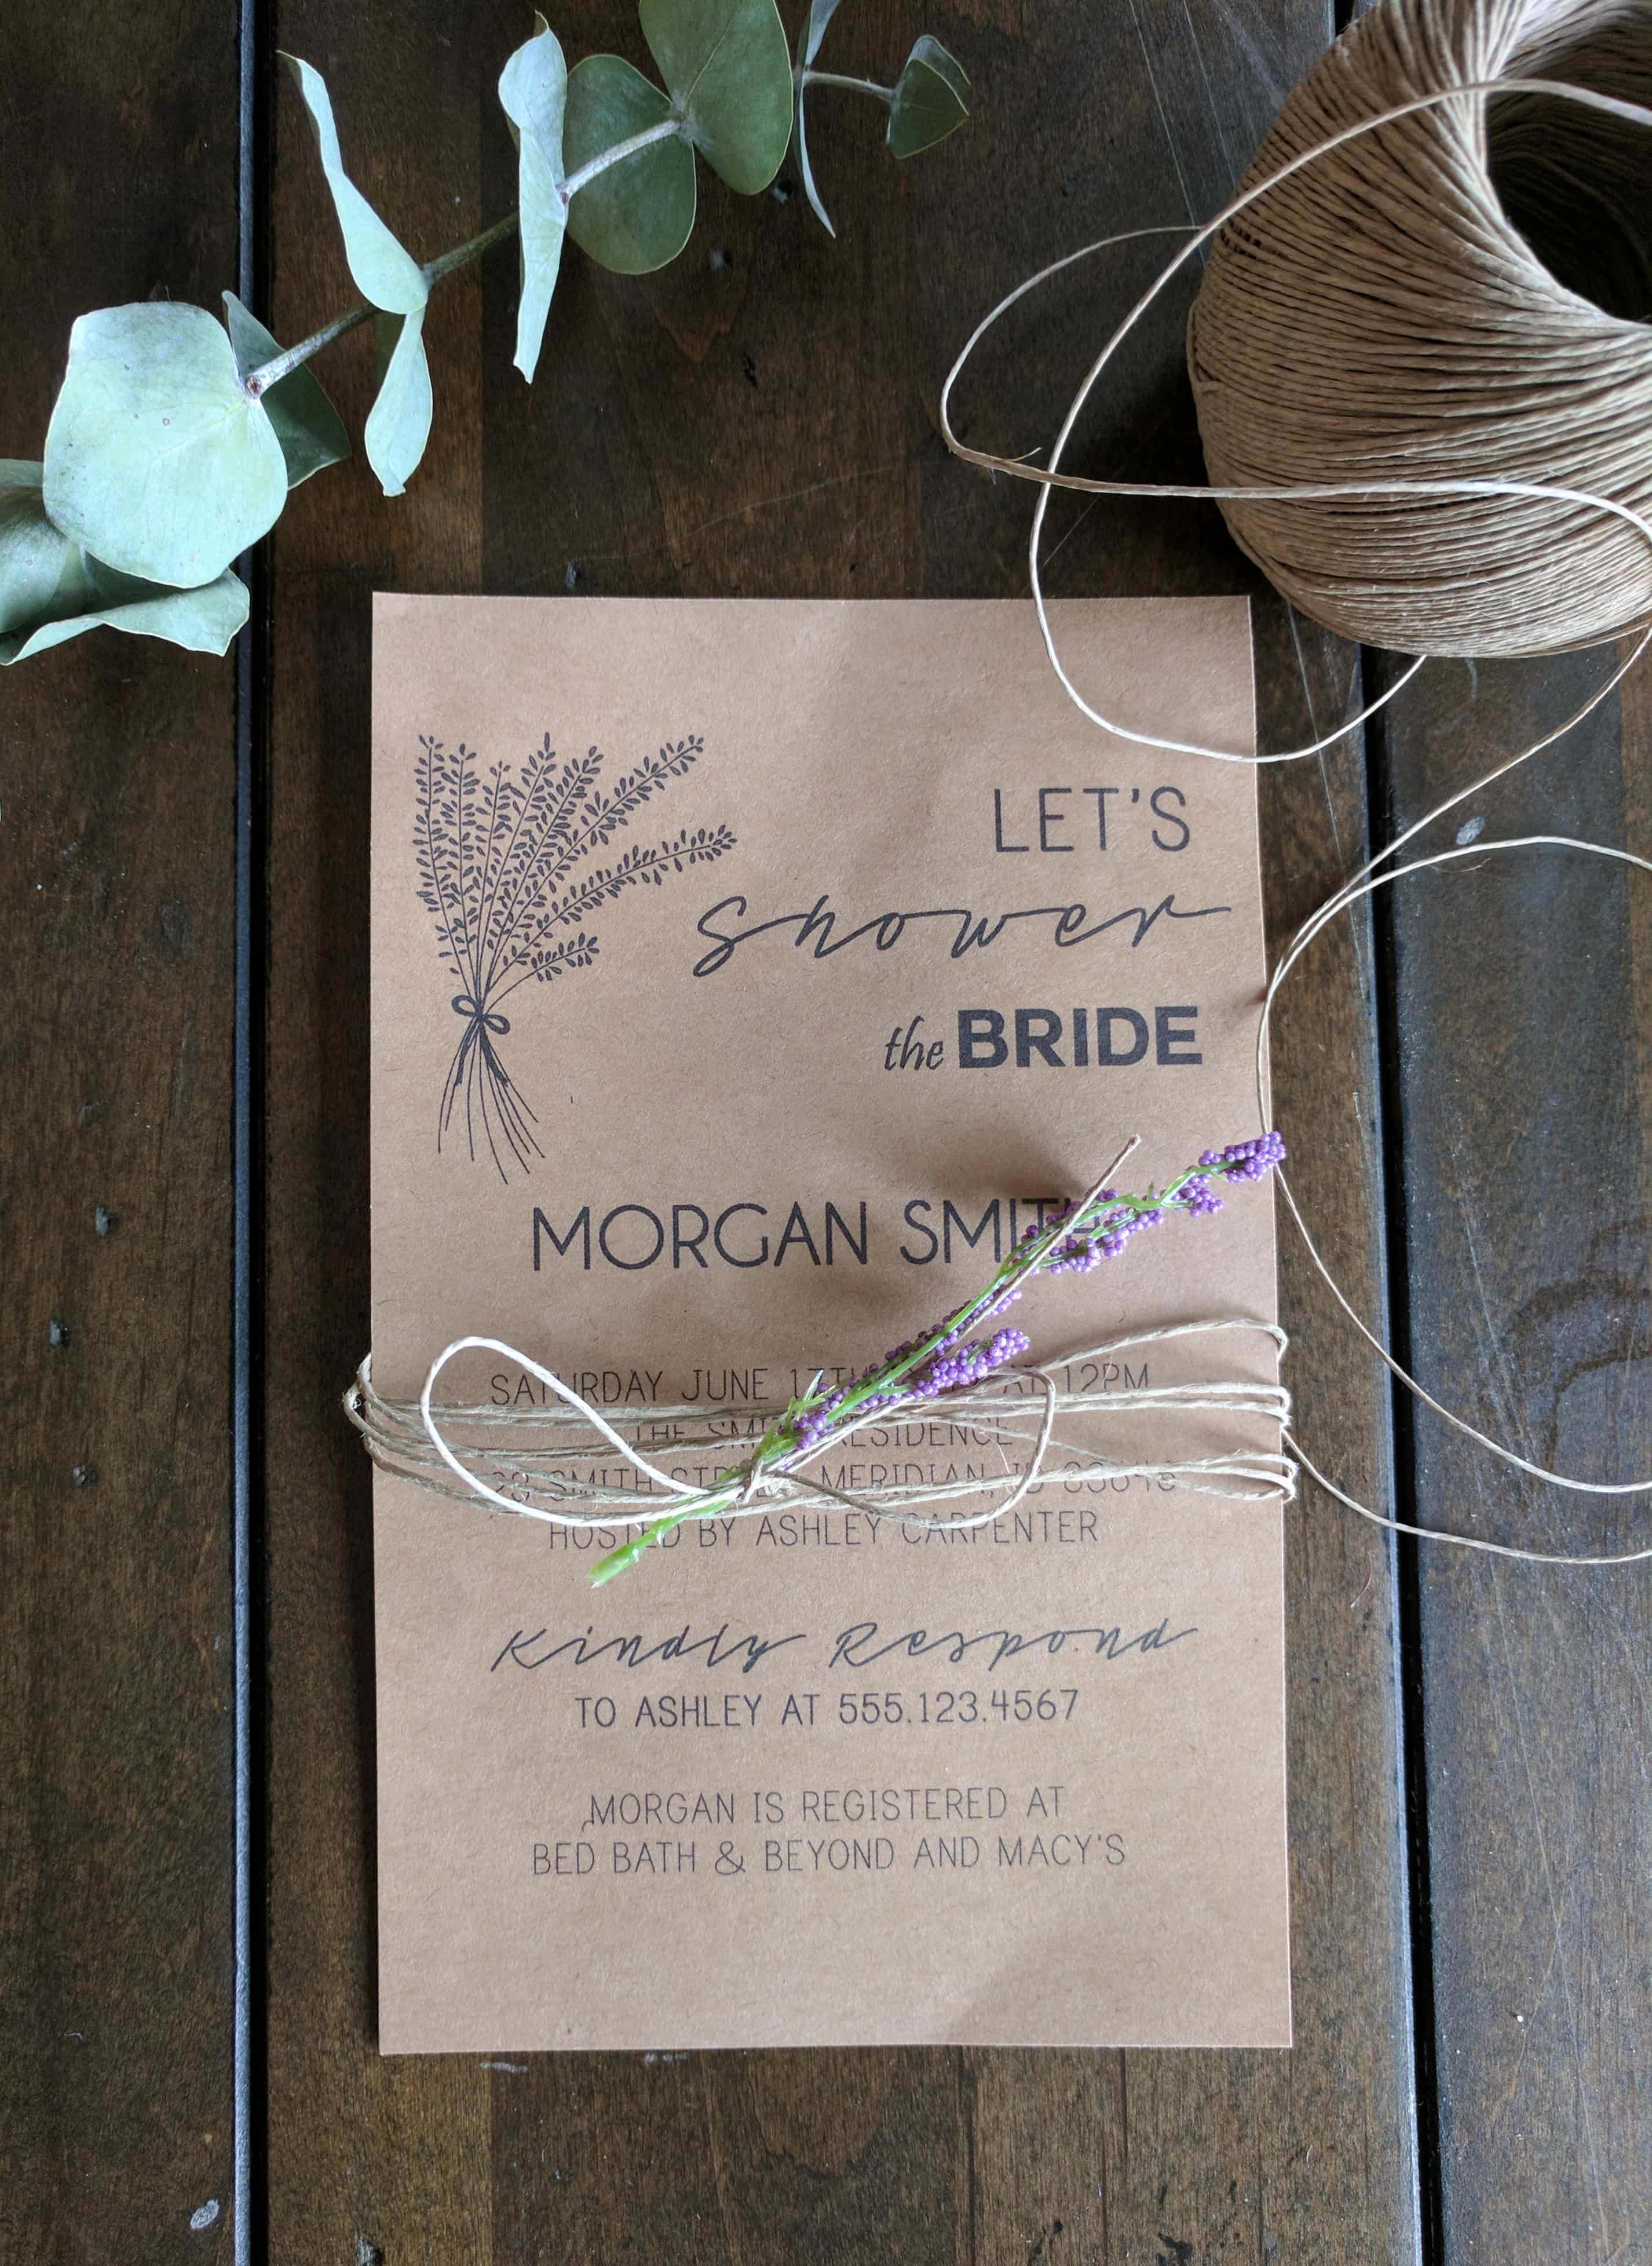 A DIY Invitation sitting on a wood table wrapped in twine with lavender